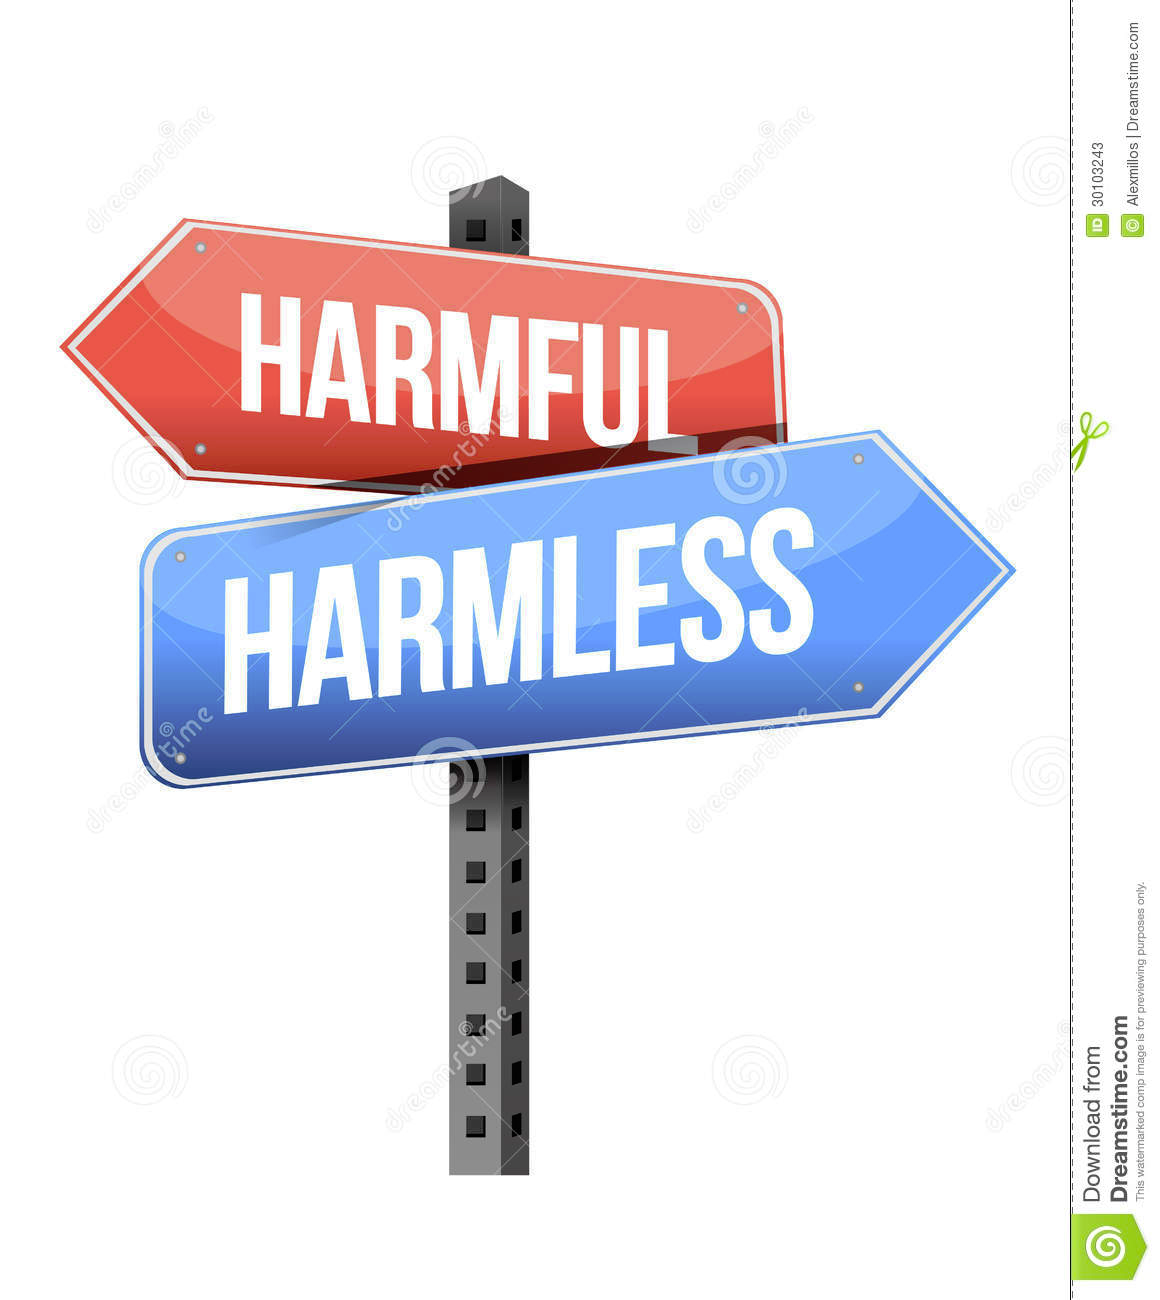 Worksheet Harmless Synonyms harmful vs harmless on emaze title